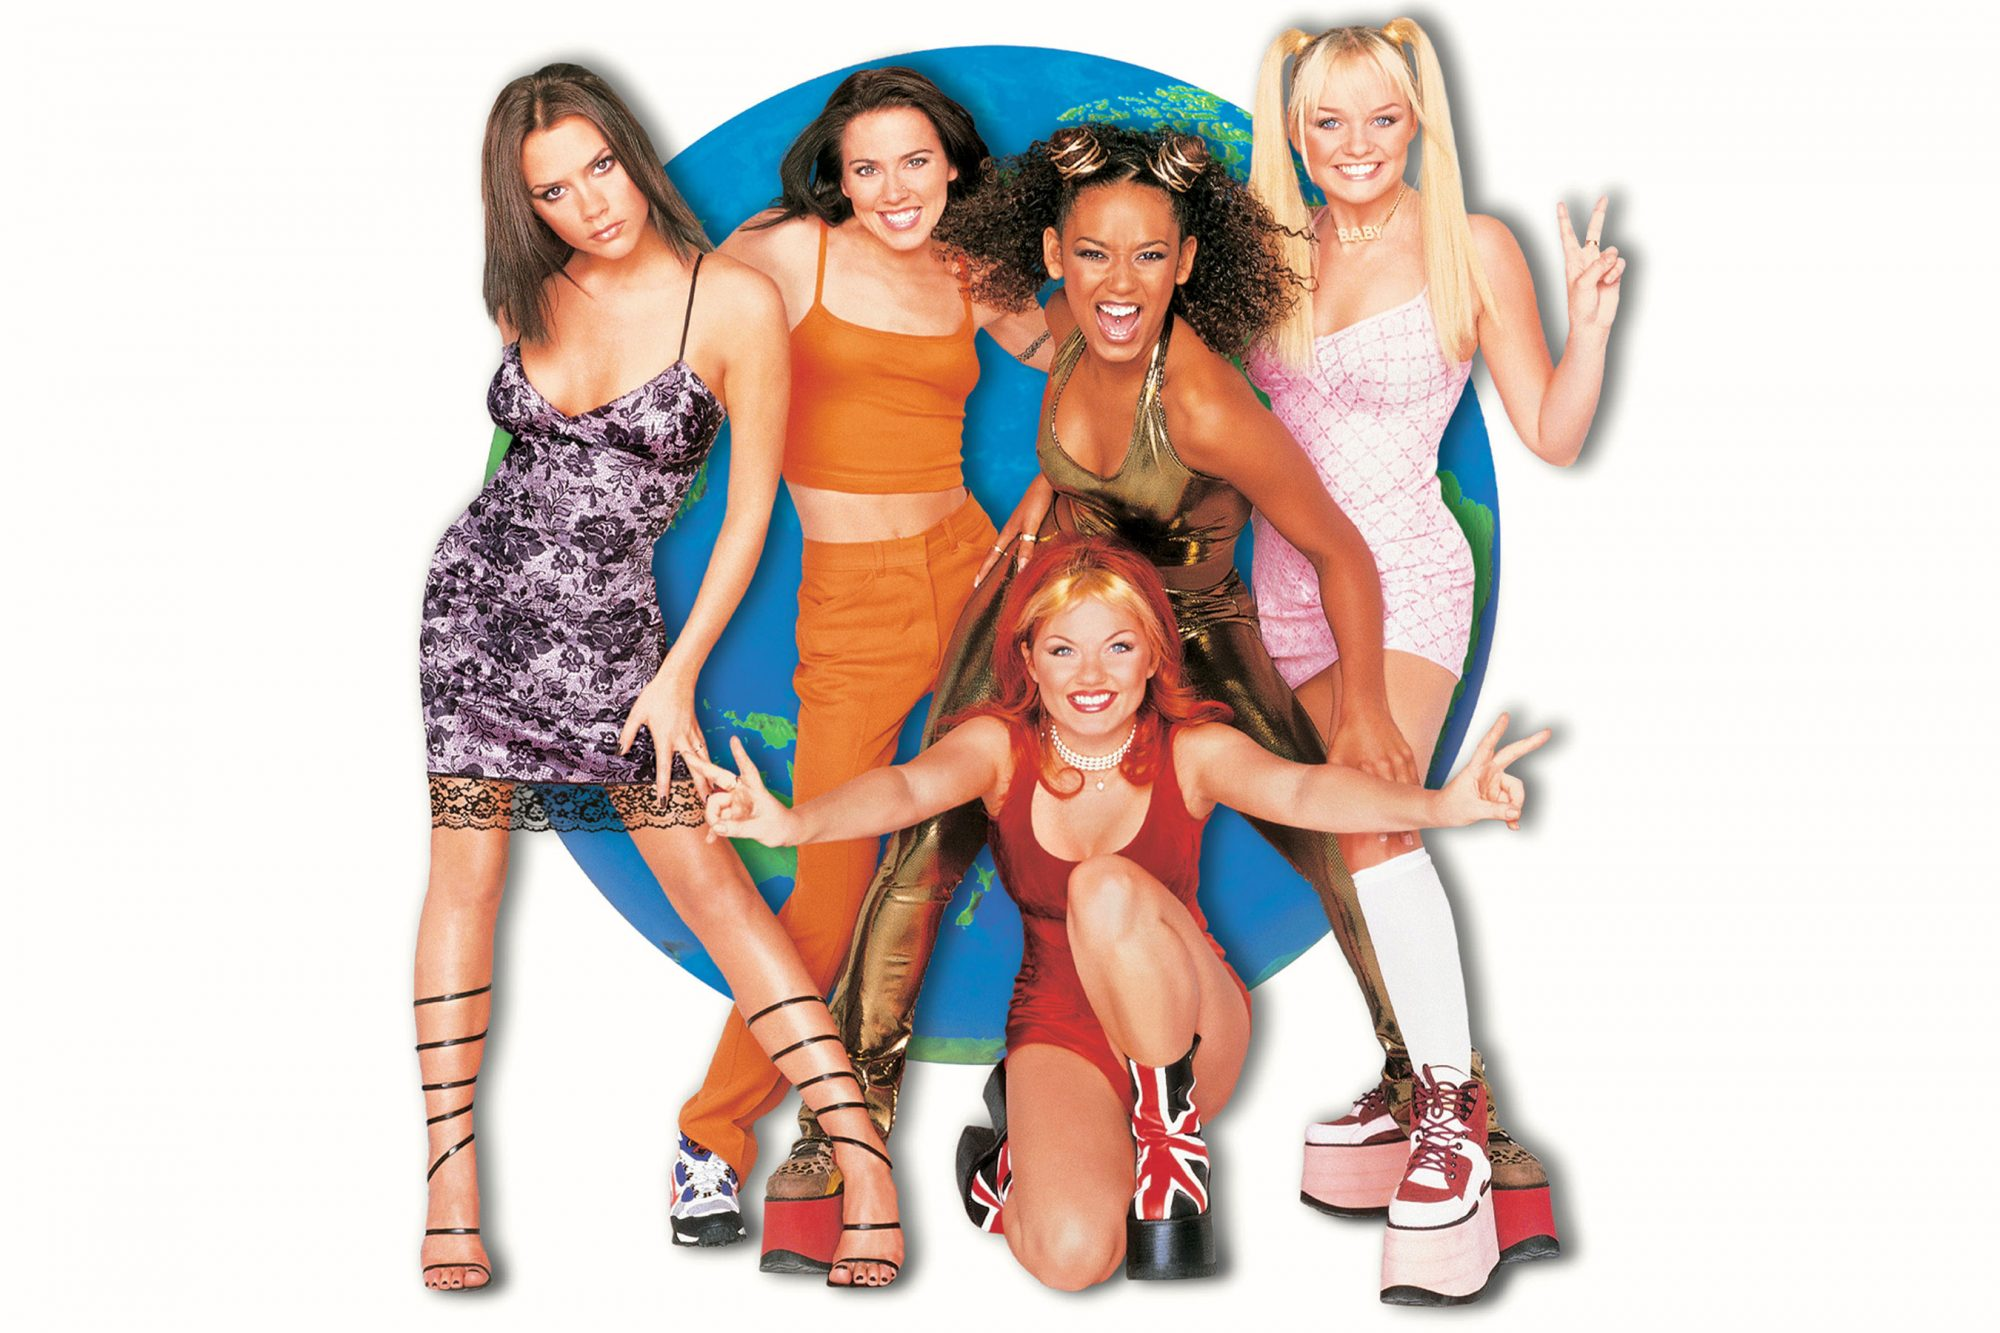 SPICE WORLD, Victoria Beckham as Posh Spice, Melanie Chisholm as Sporty Spice, Melanie Brown as Scar